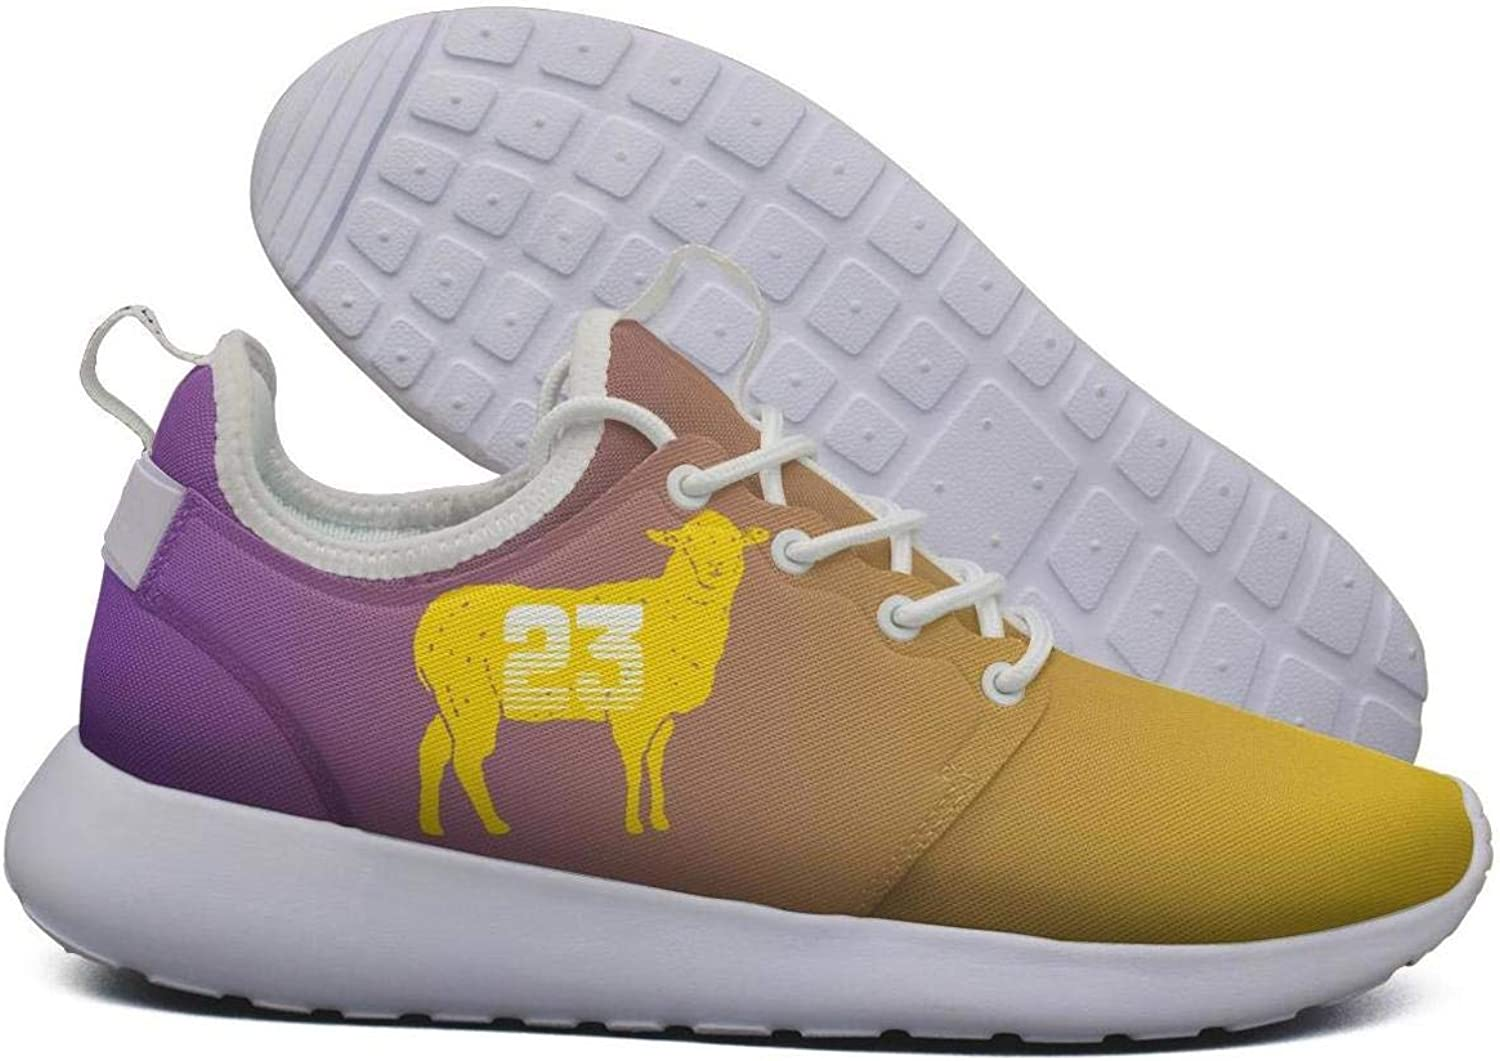 Womens Roshe Two Lightweight G.O.A.T 23 Yellow Goat Basketball Print Running Sneakers mesh shoes